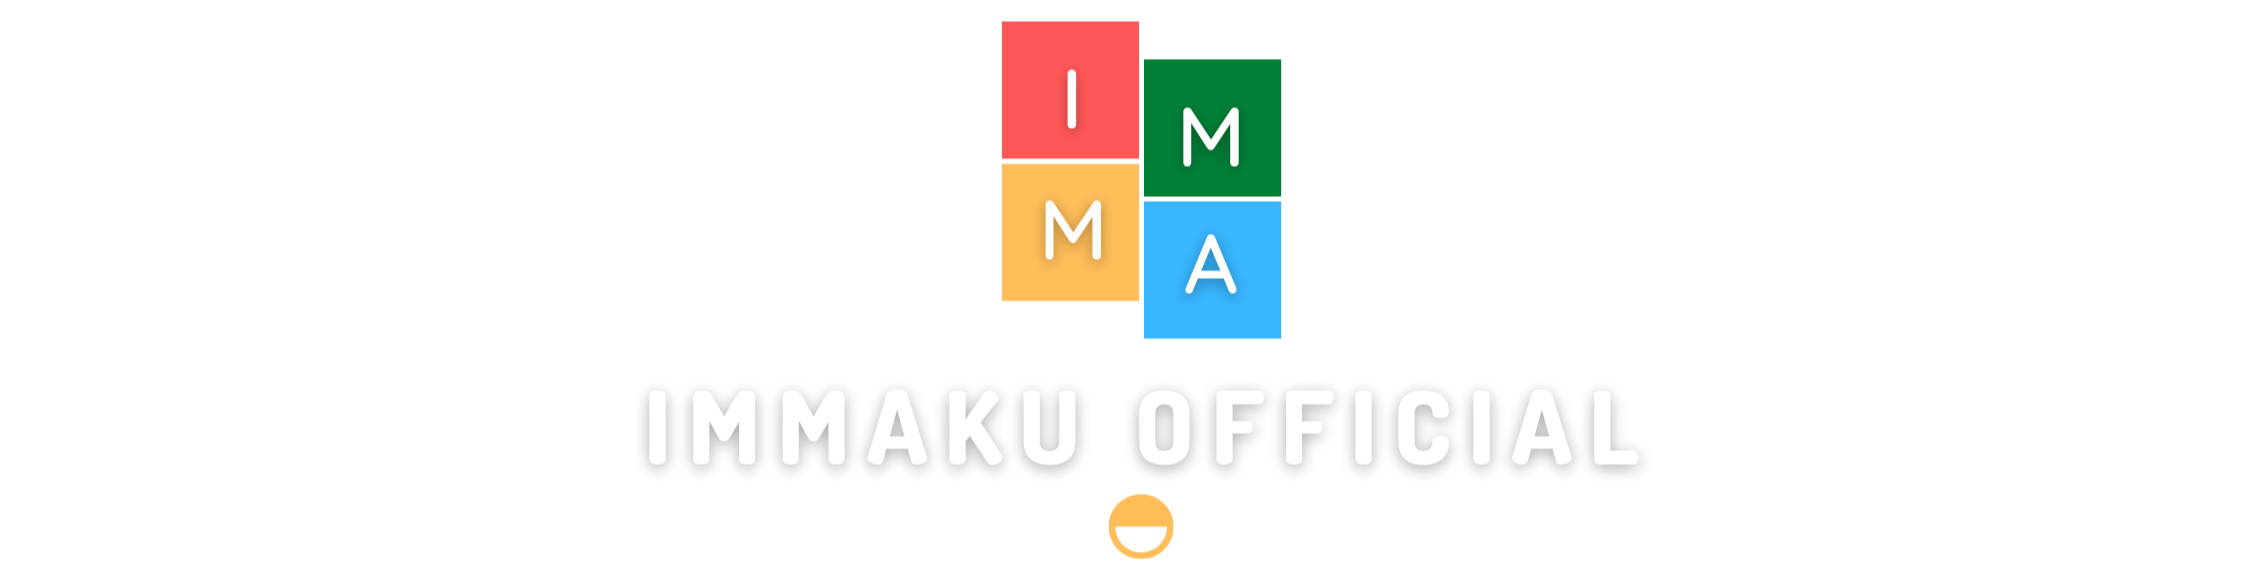 Logo Immaku Official